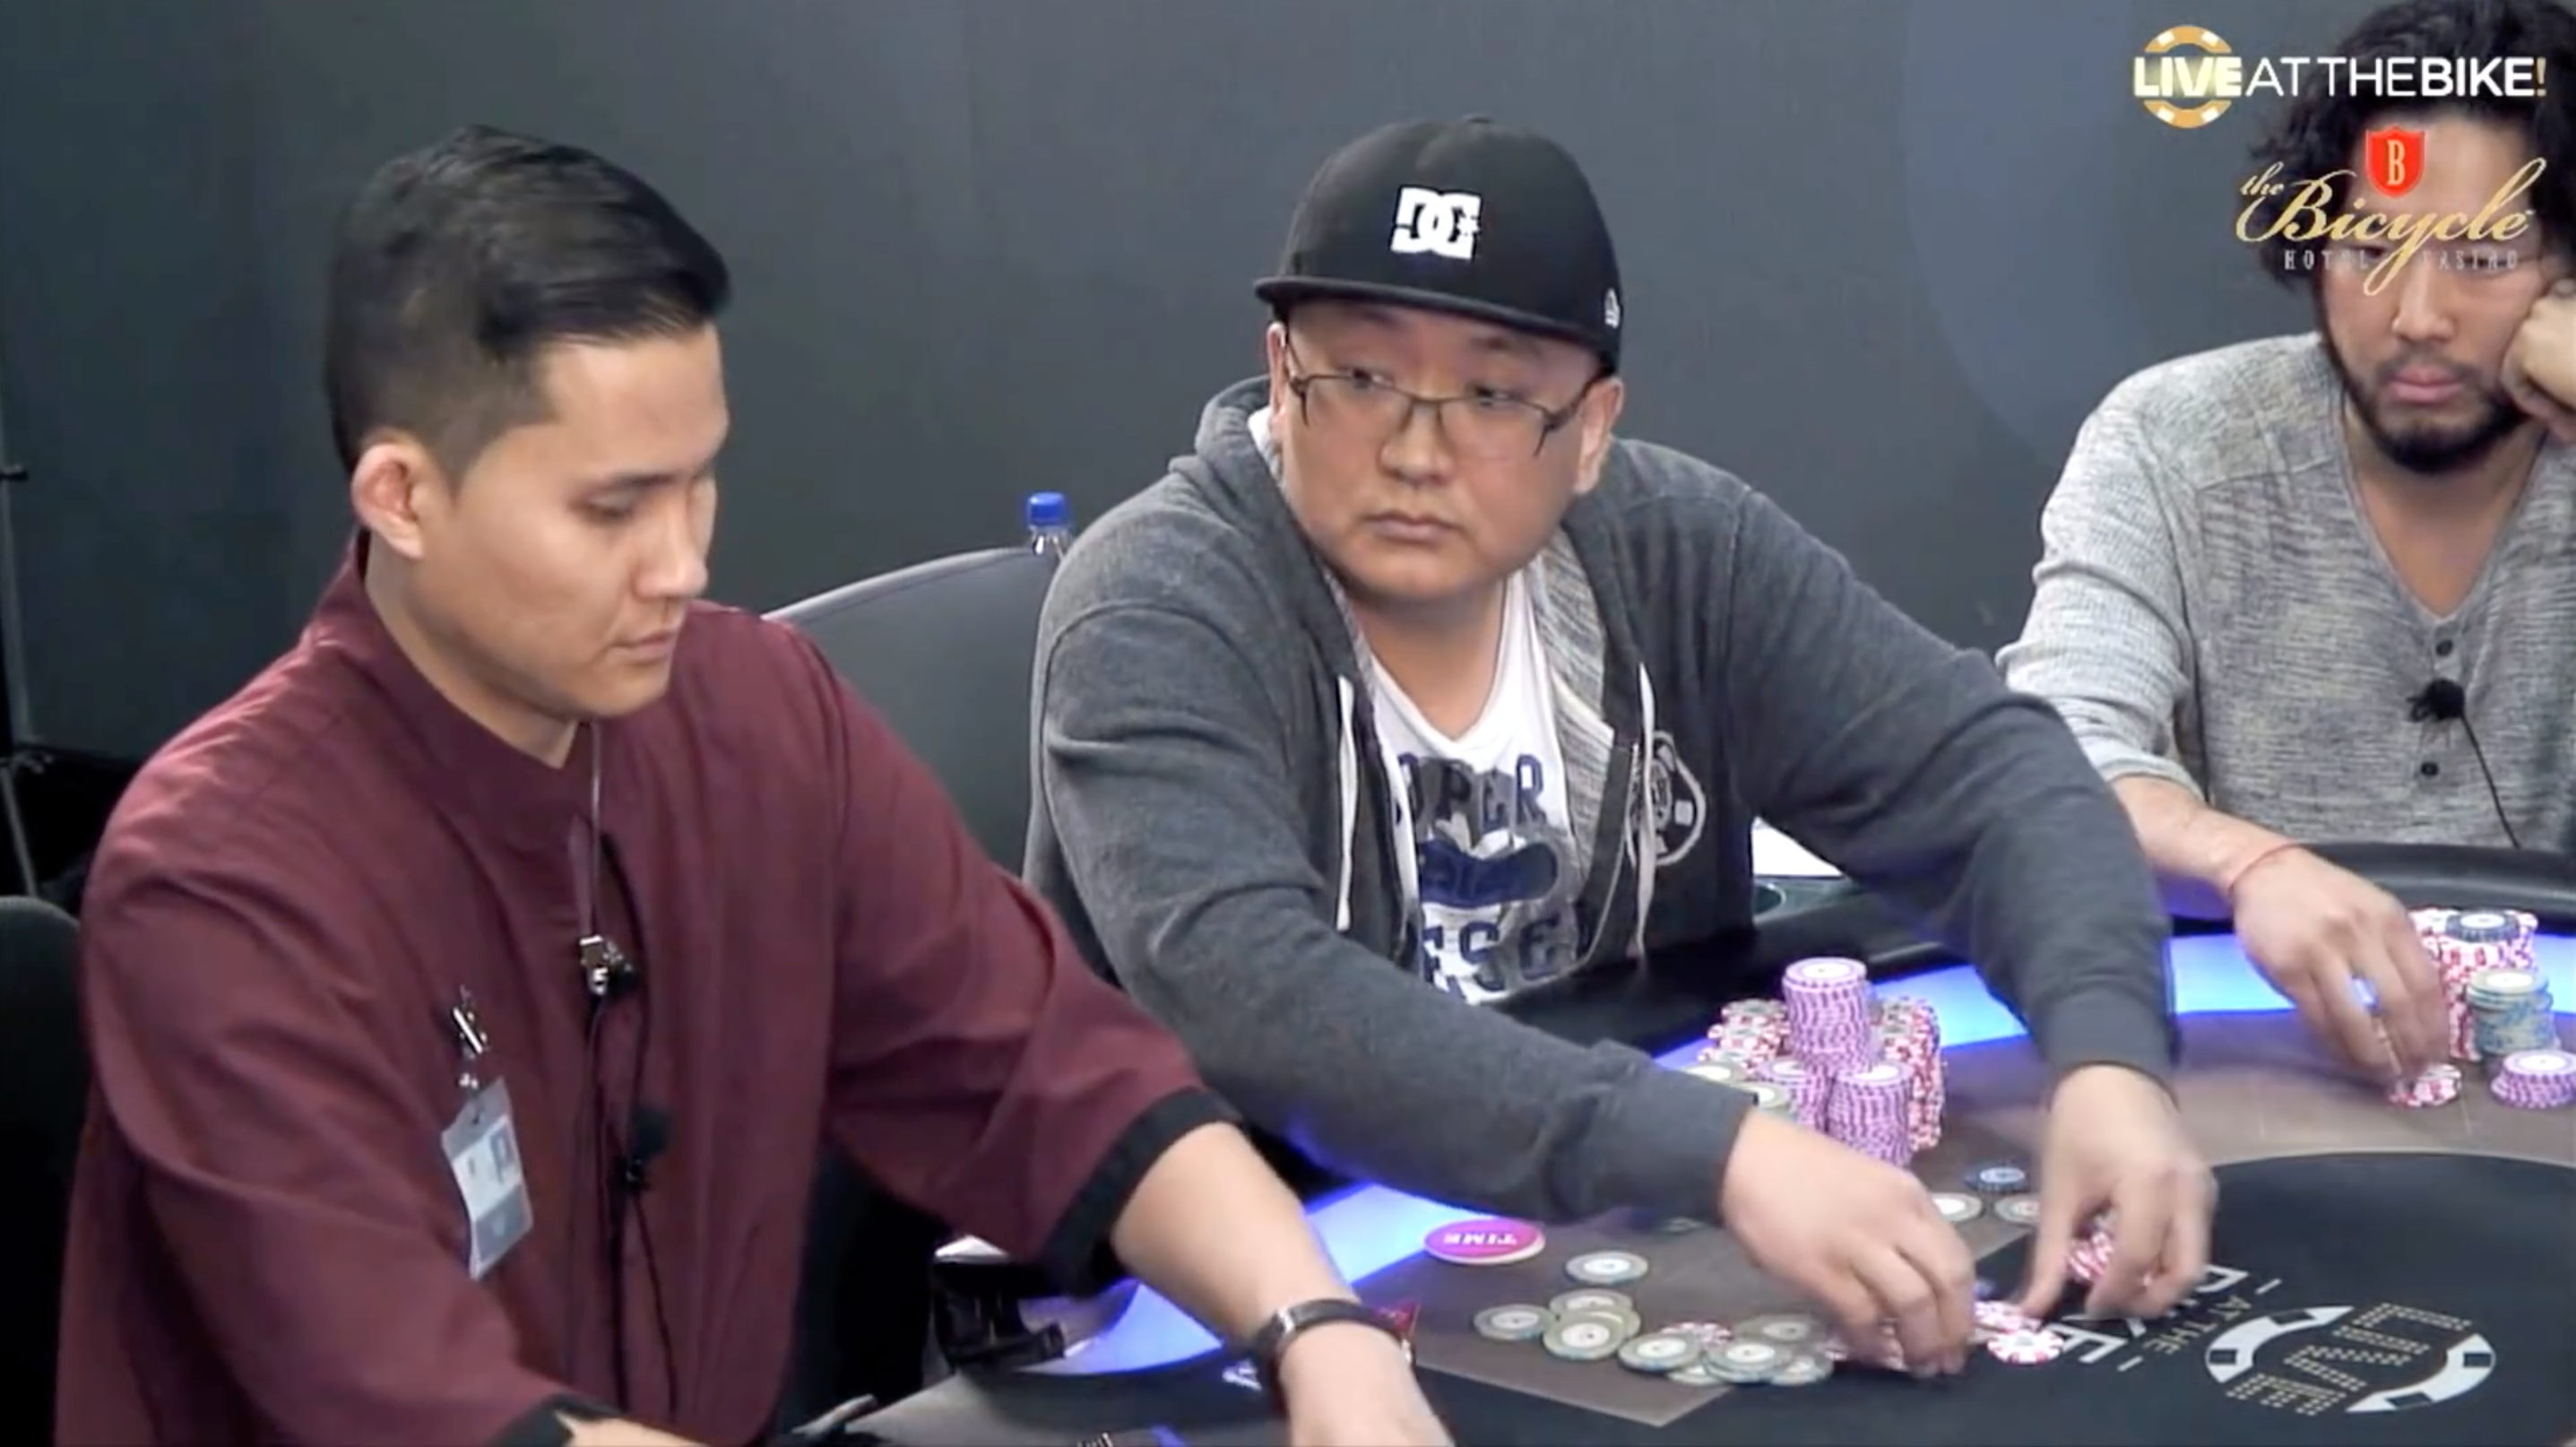 Watch The Biggest Pot In Live At The Bike History Pokernews